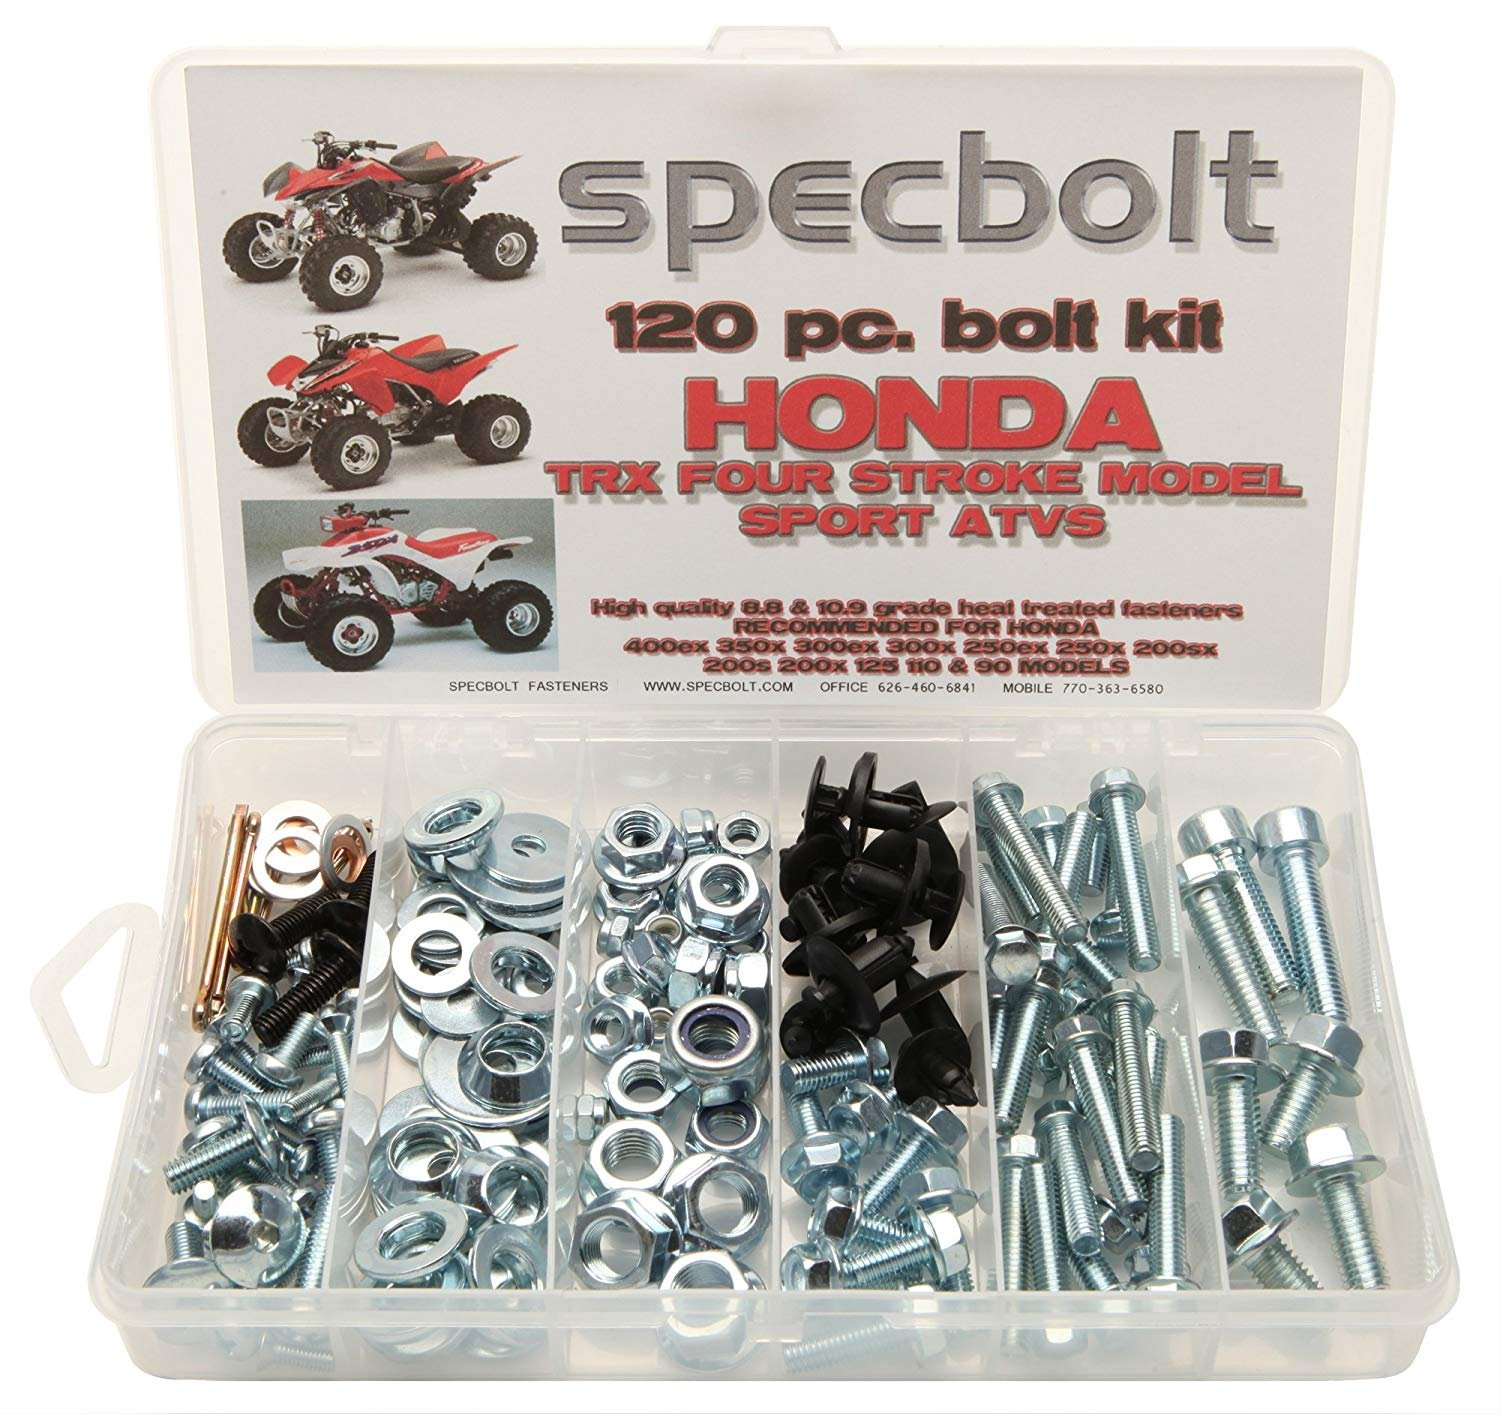 150pc Specbolt Honda 400EX /& 250EX Bolt Kit for Maintenance OEM Spec Fasteners Quad TRX400EX TRX250X aslo great for ATC /& TRX 350x 300ex 300x 250ex 250x 200sx 200s 200x 125cc 110cc /& TRX90 models